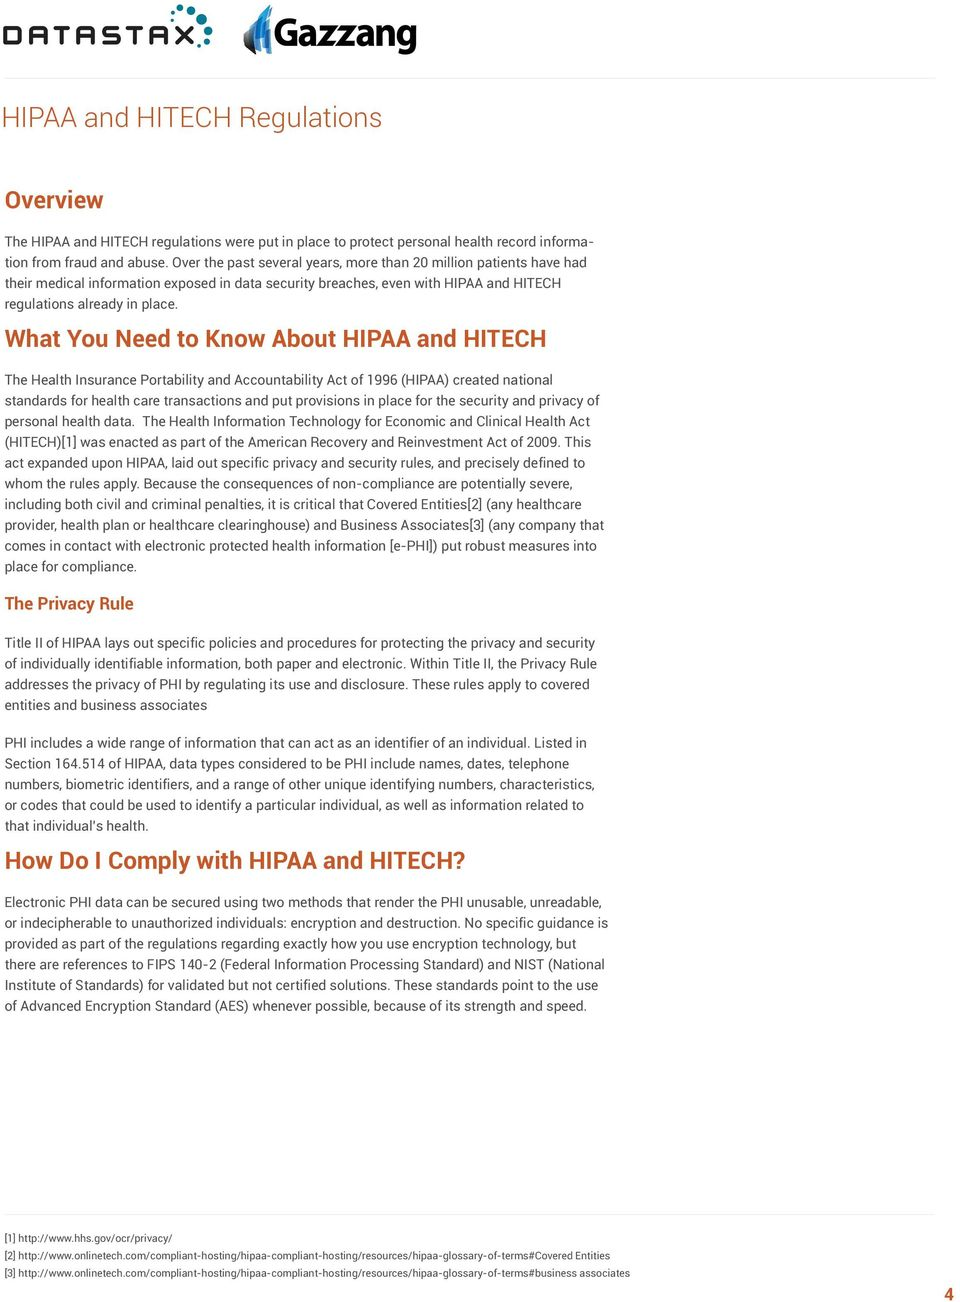 What You Need to Know About HIPAA and HITECH The Health Insurance Portability and Accountability Act of 1996 (HIPAA) created national standards for health care transactions and put provisions in